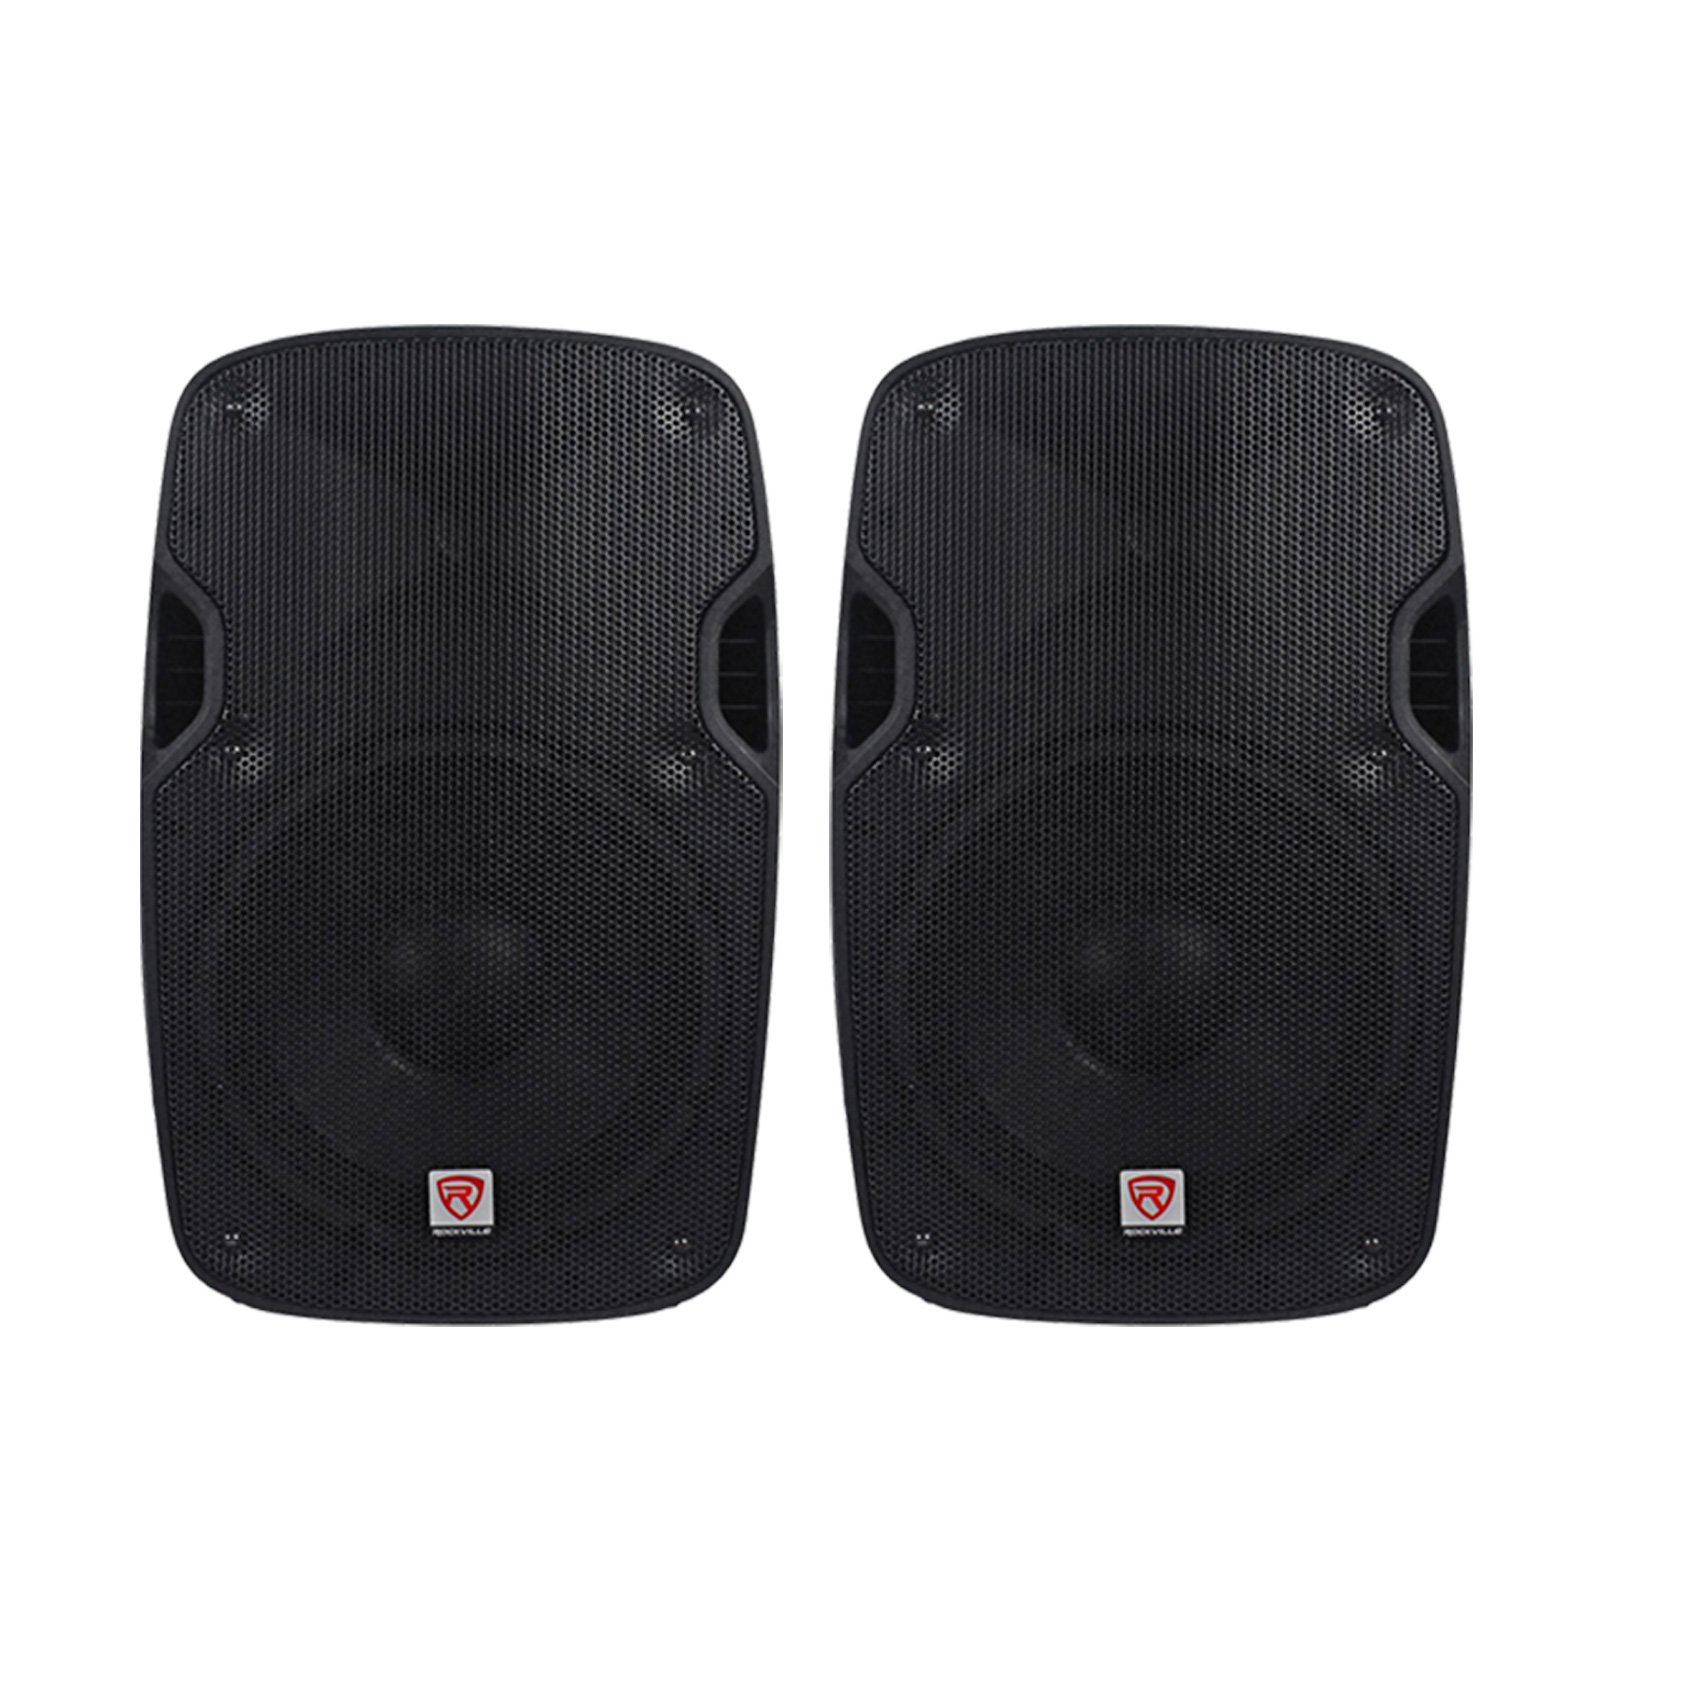 (2) Rockville SPGN108 10'' Passive 8 Ohm Lightweight DJ PA ABS Cabinet Speakers Totaling 1600 Watt With 2'' Aluminum Voice Coil For Amazing Sound Clarity